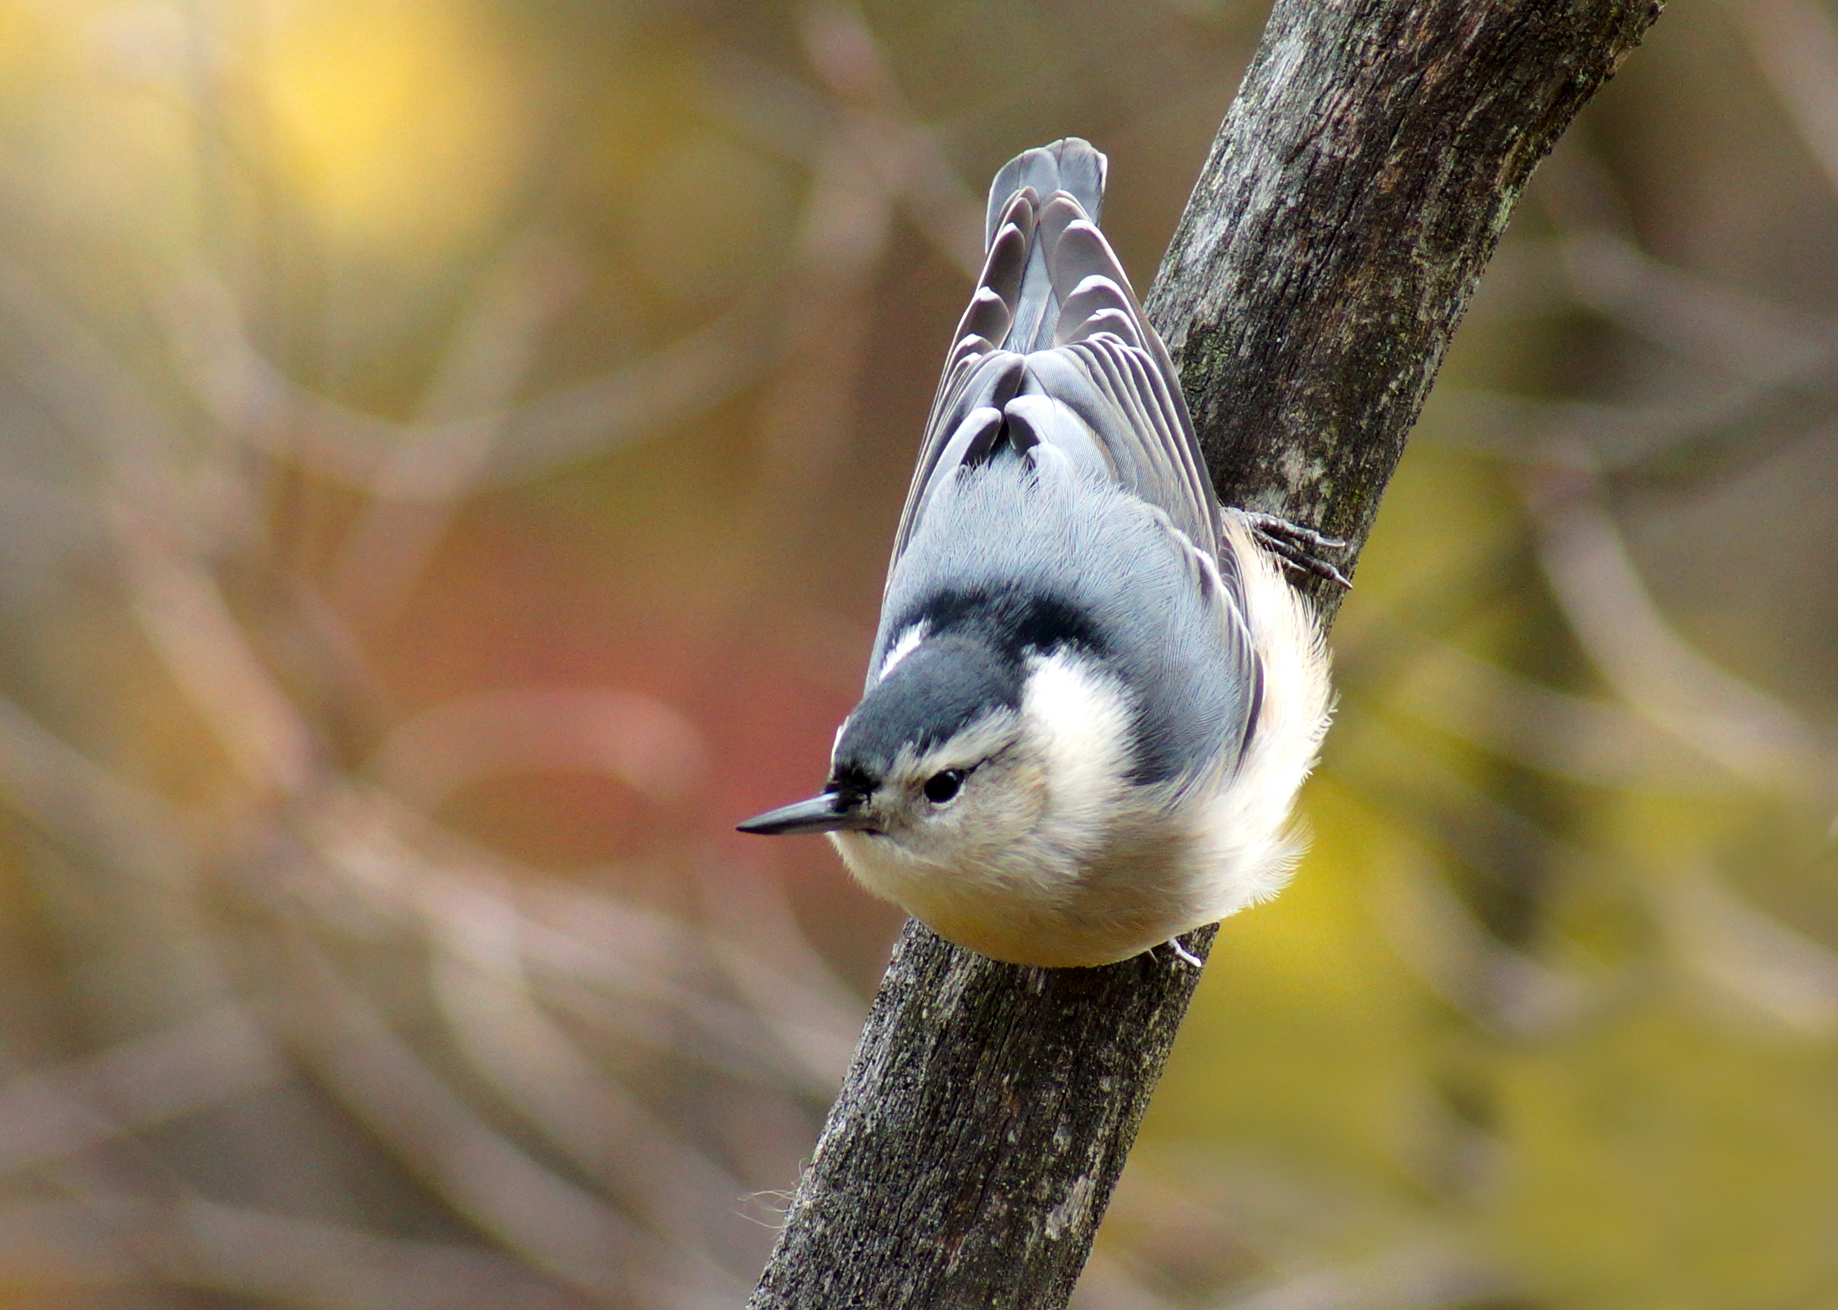 Julie Craves describes a friendly nuthatch's fierce display